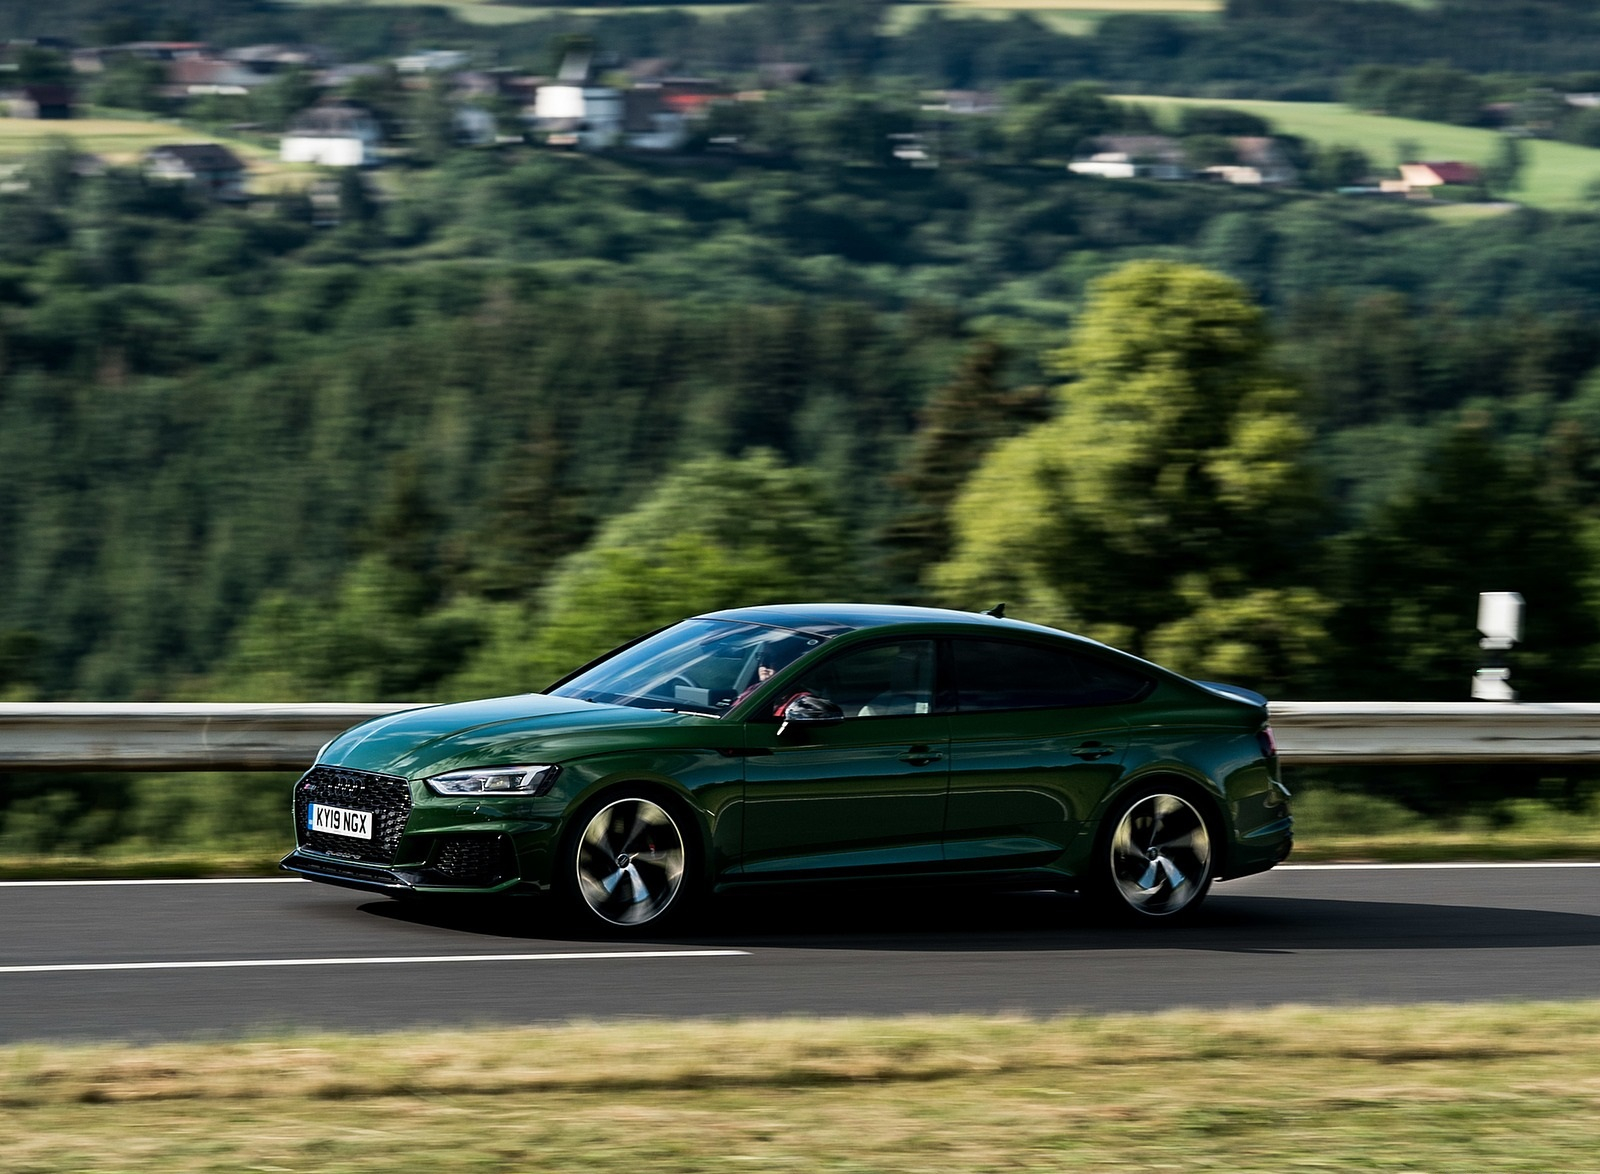 2019 Audi RS 5 Sportback (UK-Spec) Front Three-Quarter Wallpapers (15)